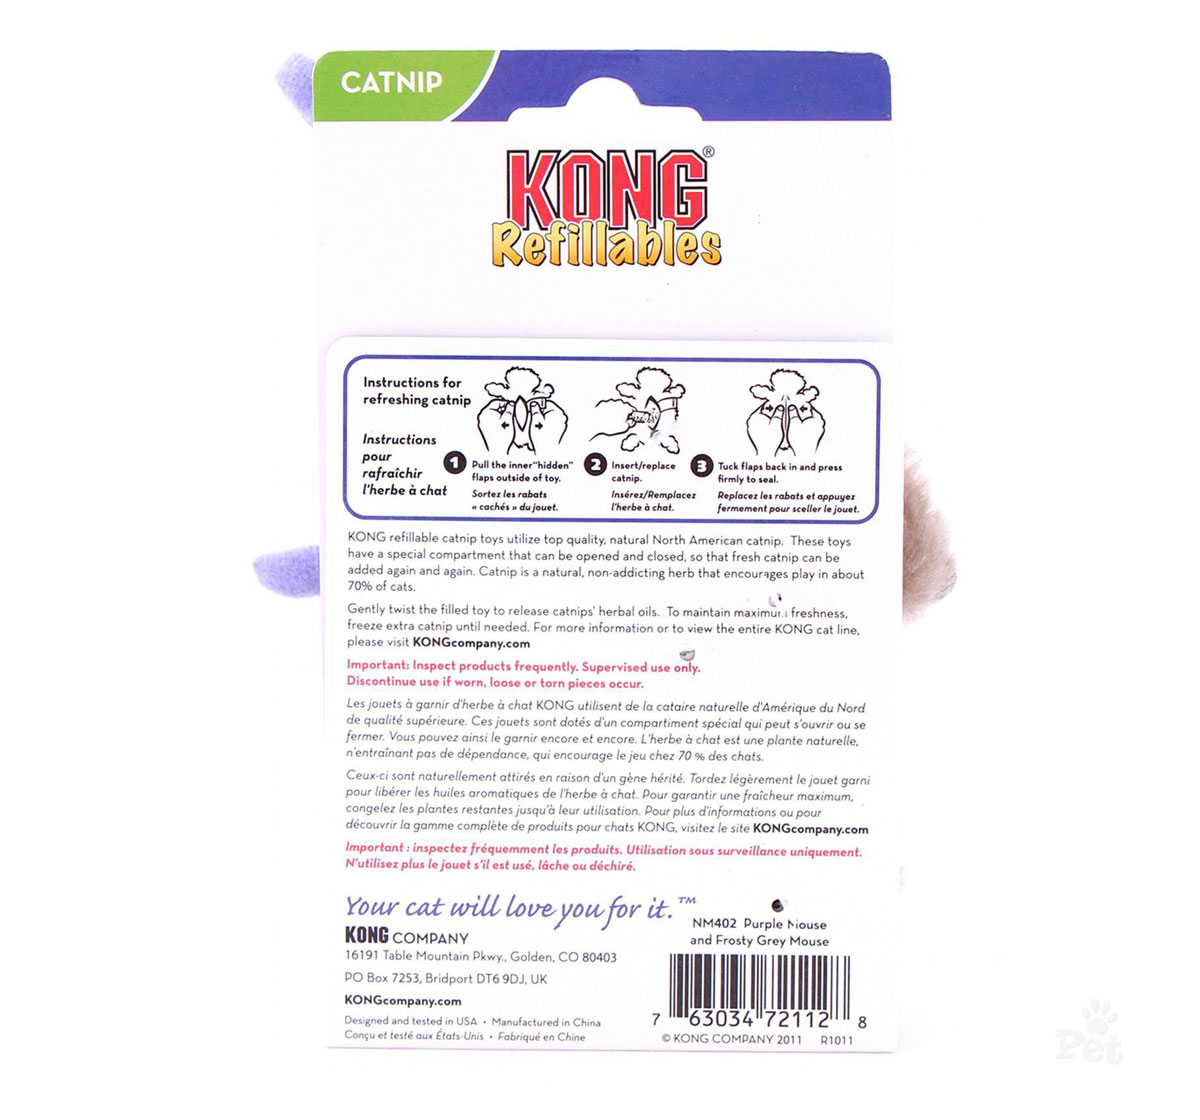 KONG Purple Mouse & Frosty Grey Mouse Cat Toy